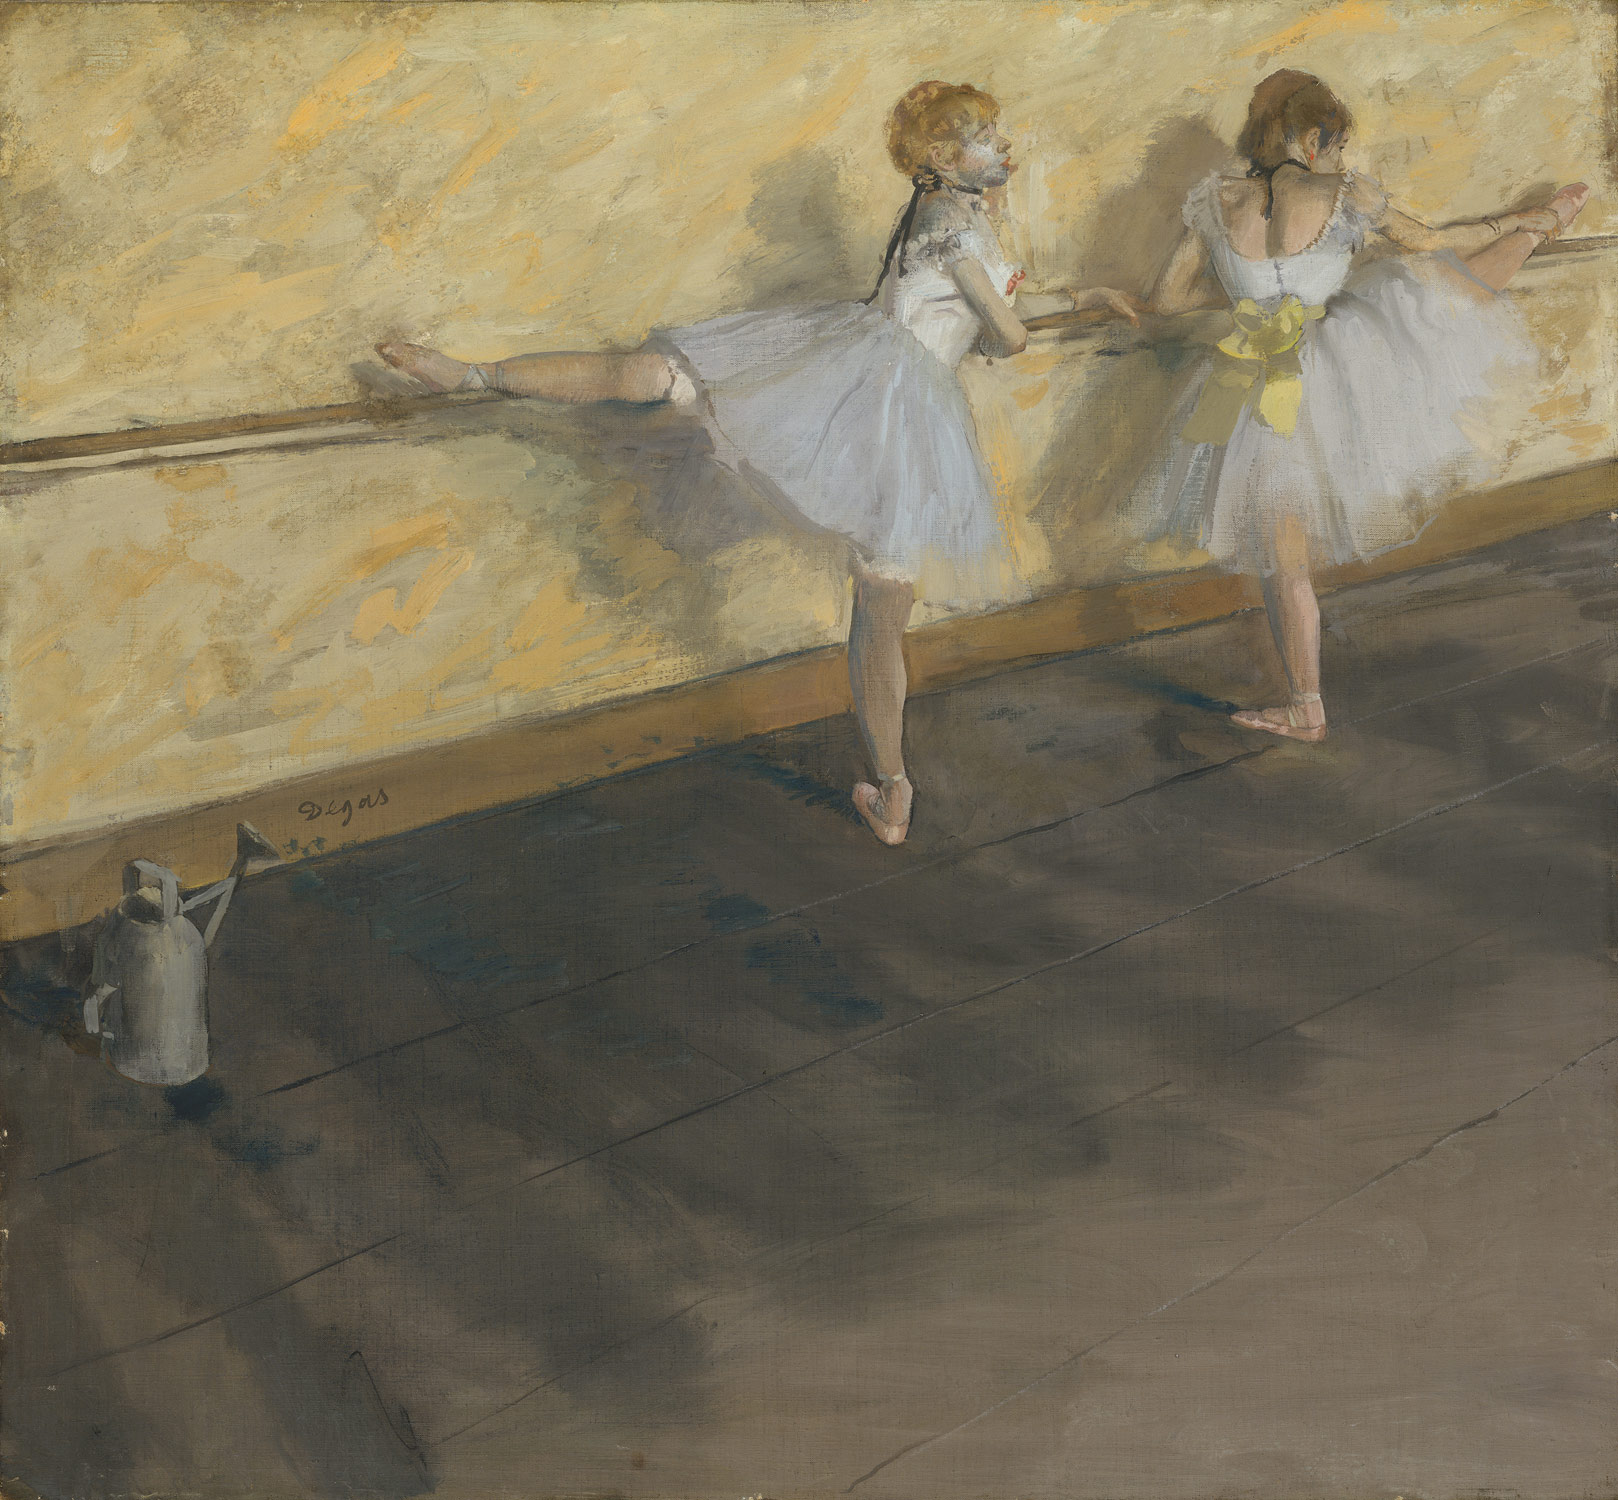 the ballet essay heilbrunn timeline of art history the dancers practicing at the bar